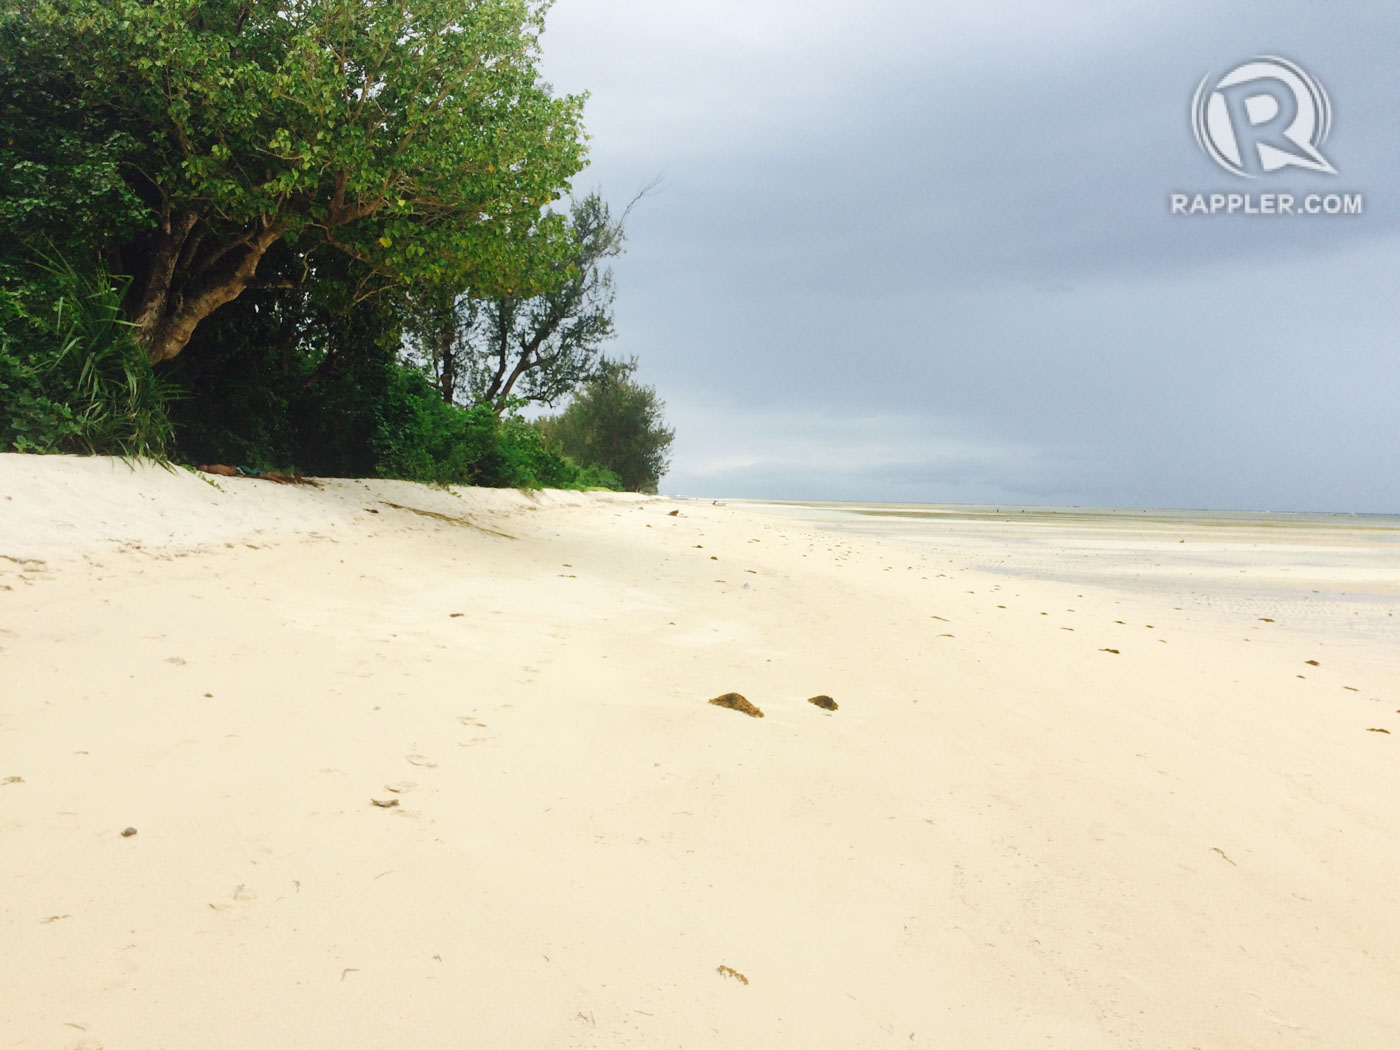 SOLITUDE. How about a date with nature? Photo by Bonz Magsambol/Rappler